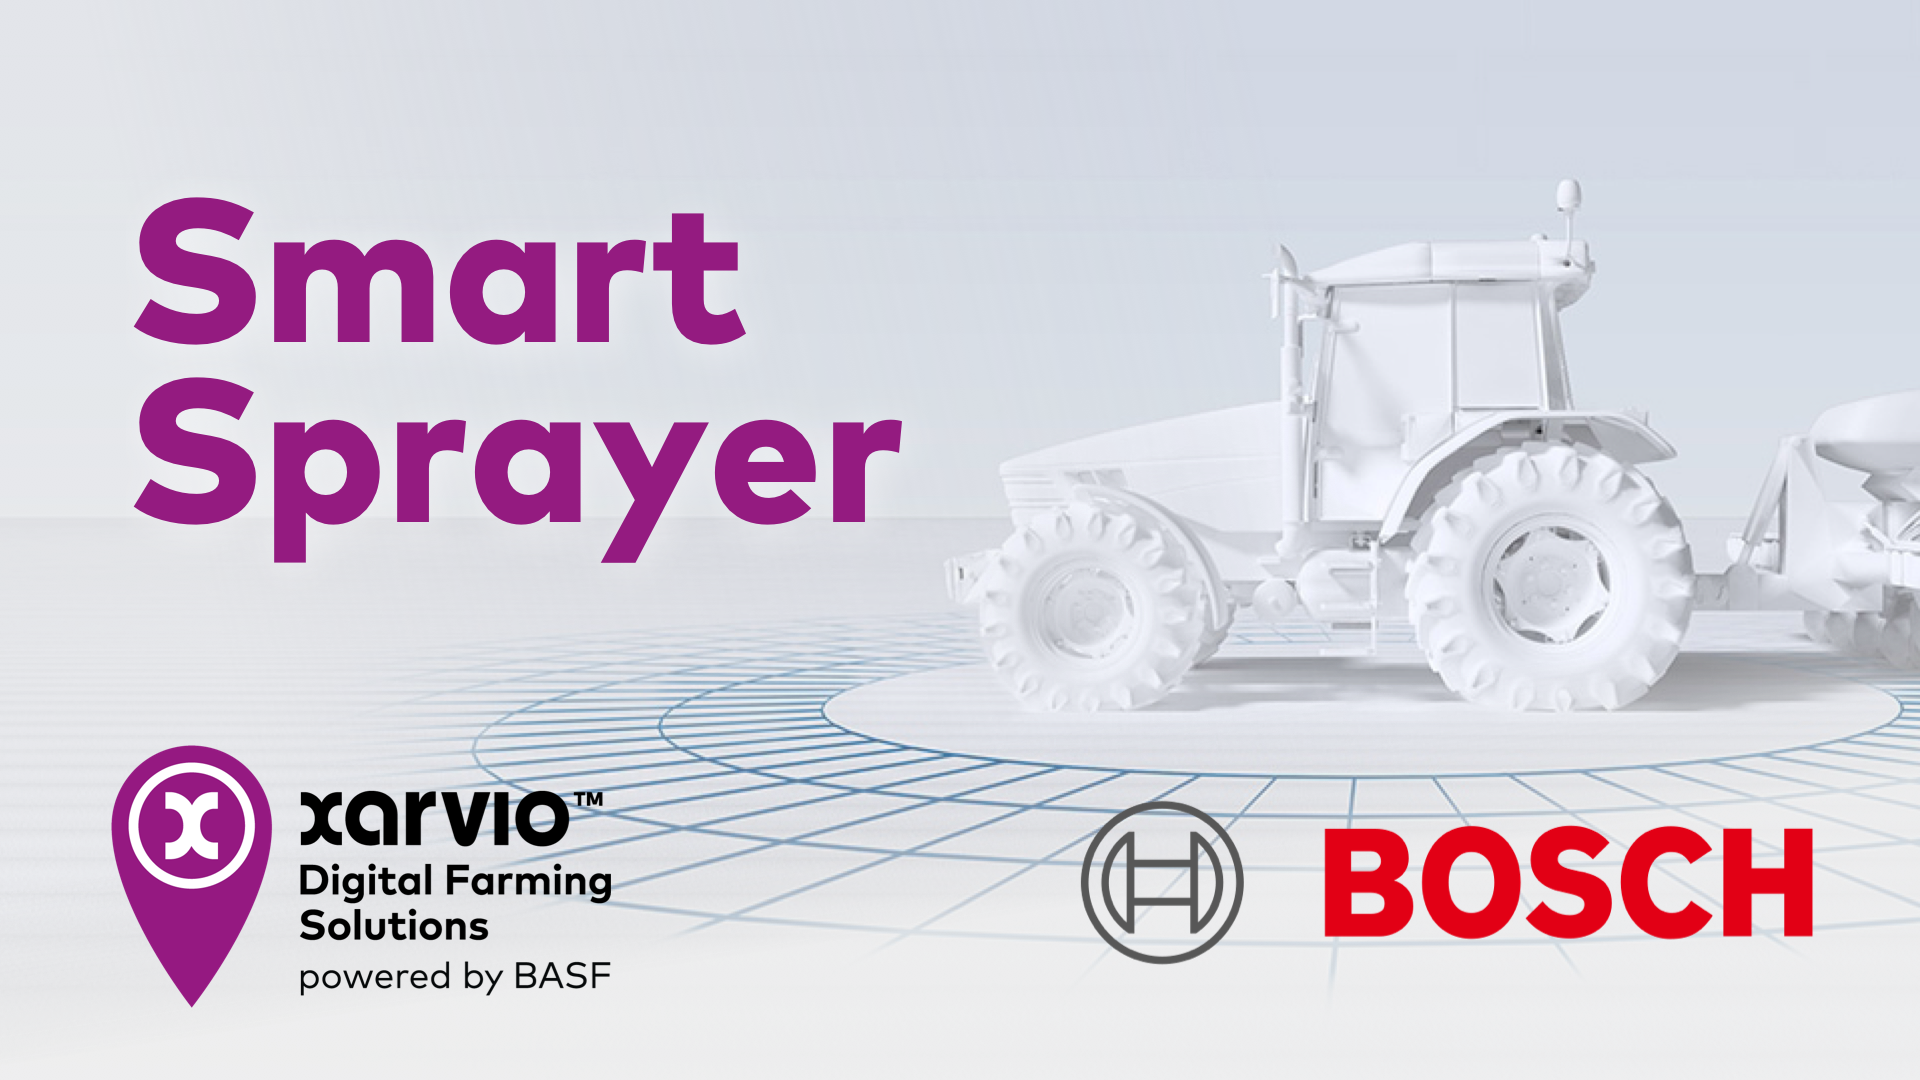 xarvio™ Smart Sprayer